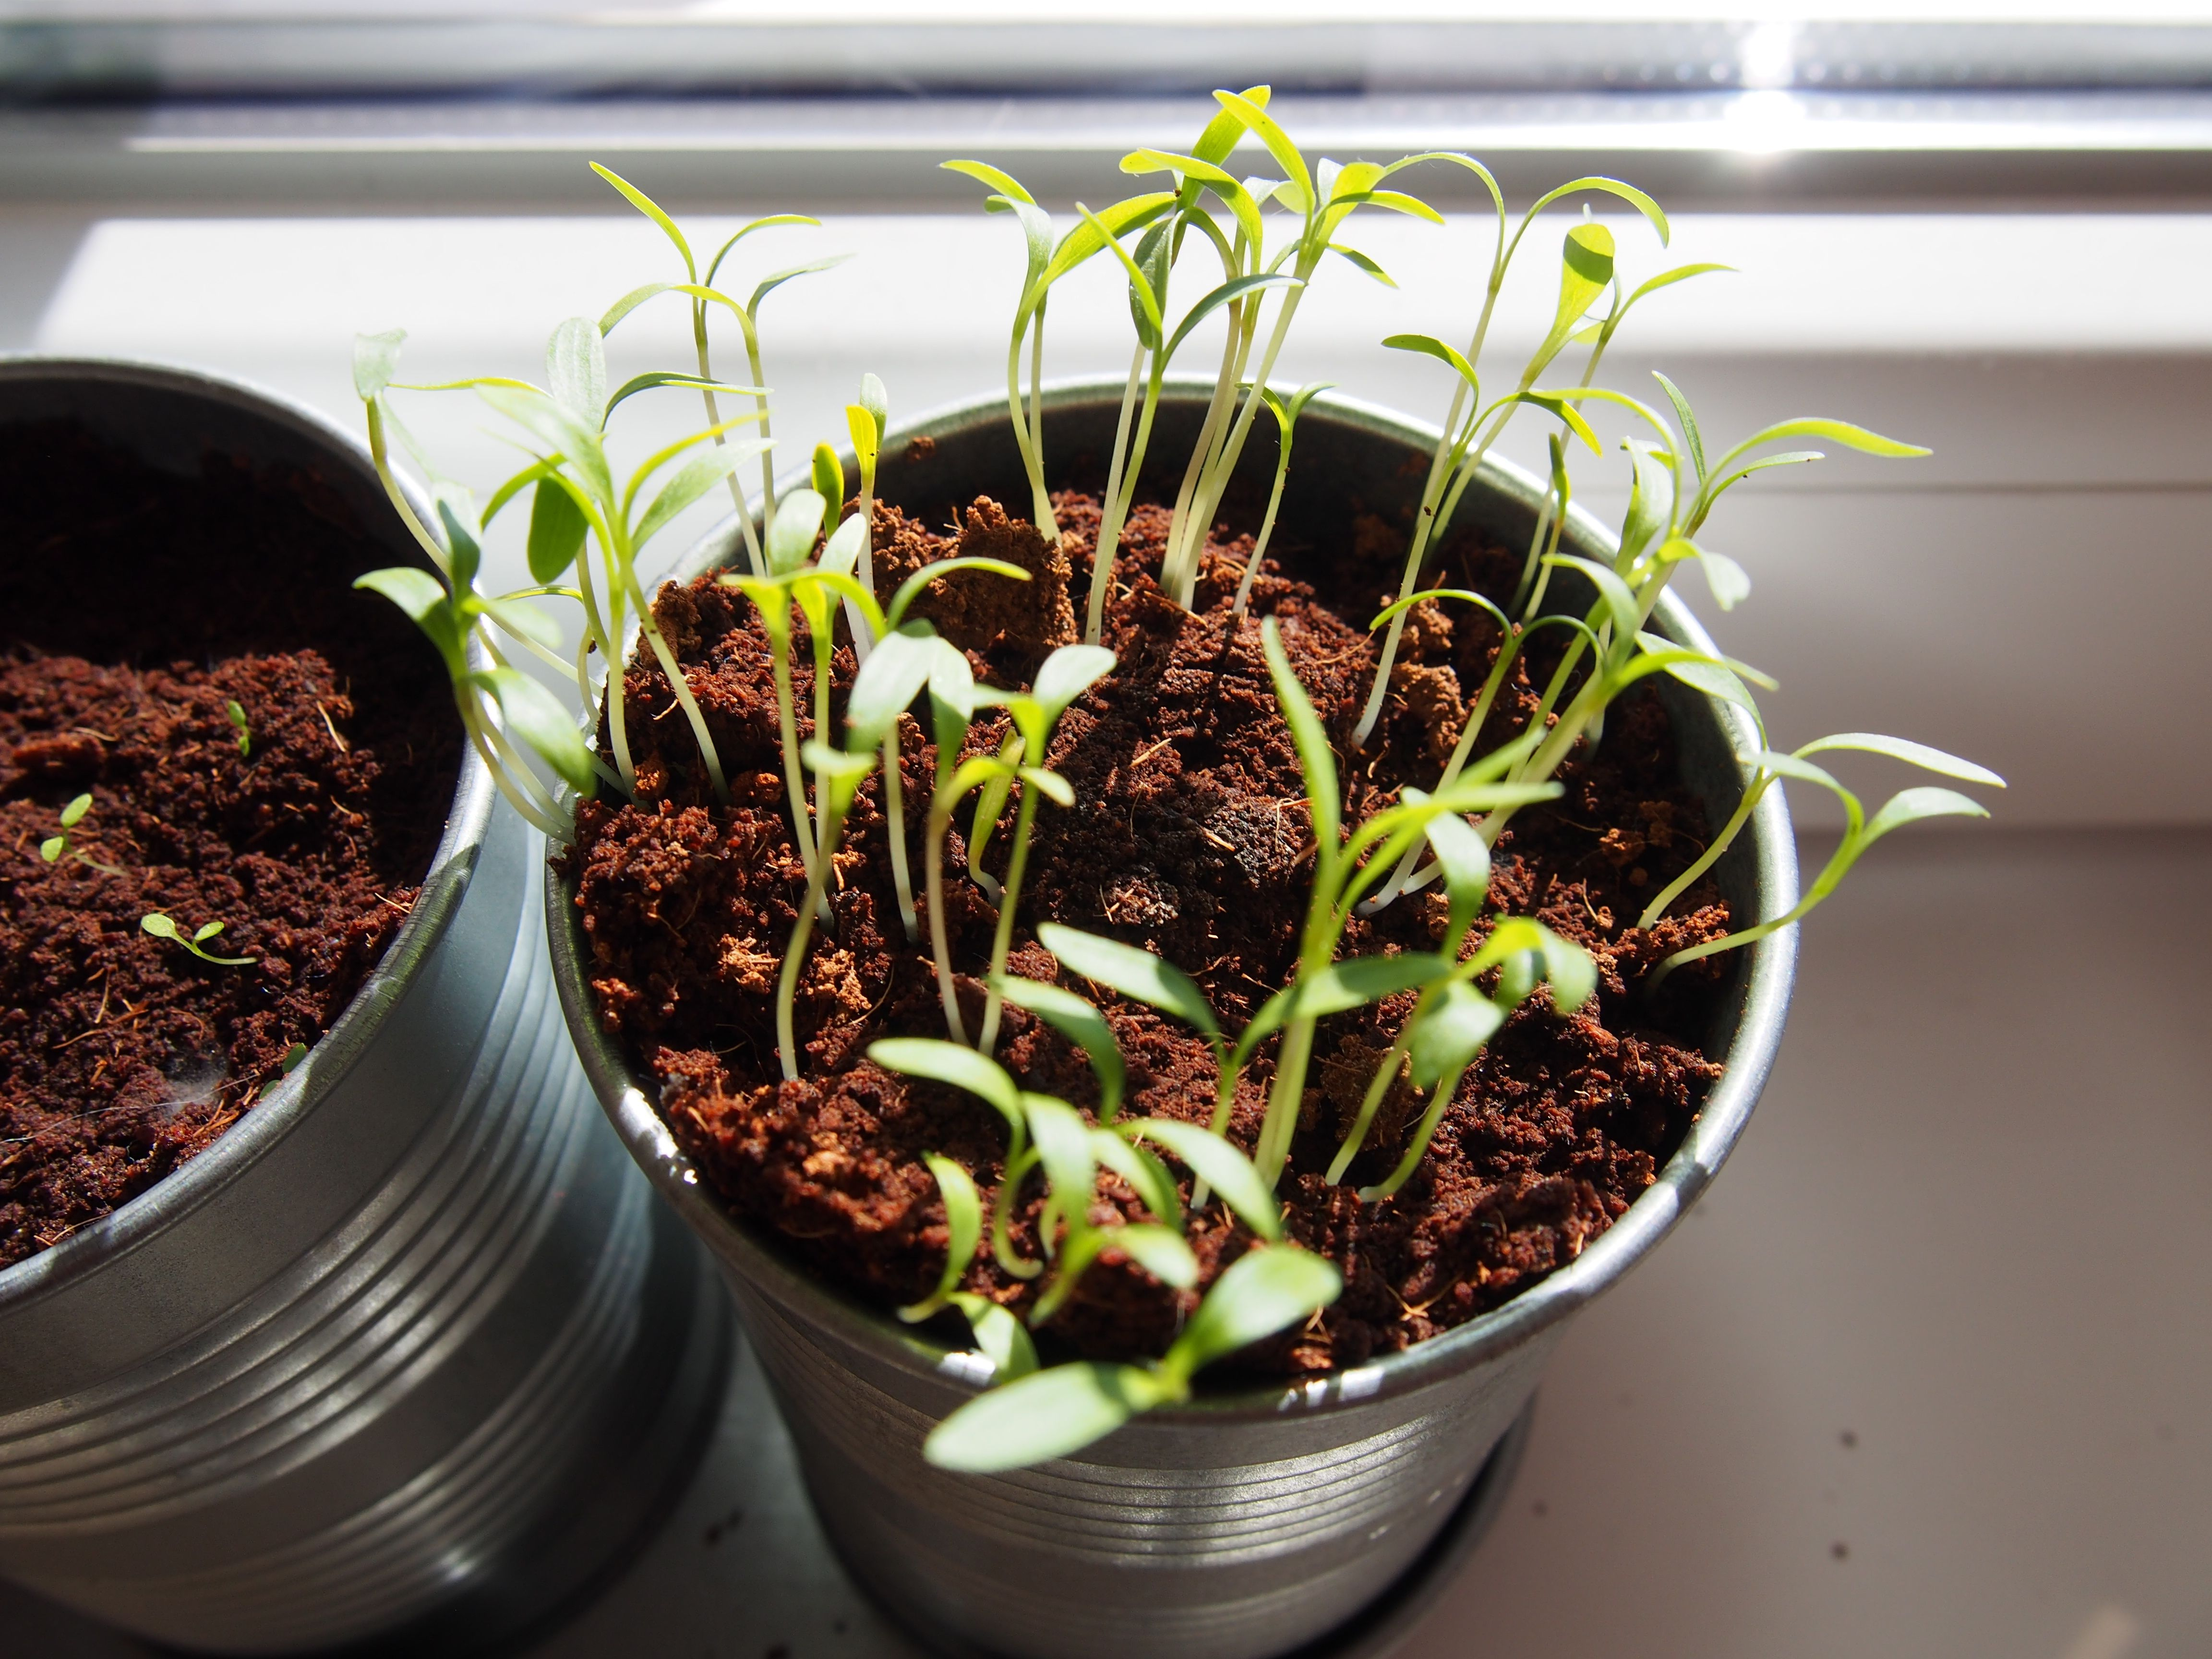 high angle view of potted seedlings on window sill 582df7e65f9b58d5b1837e48